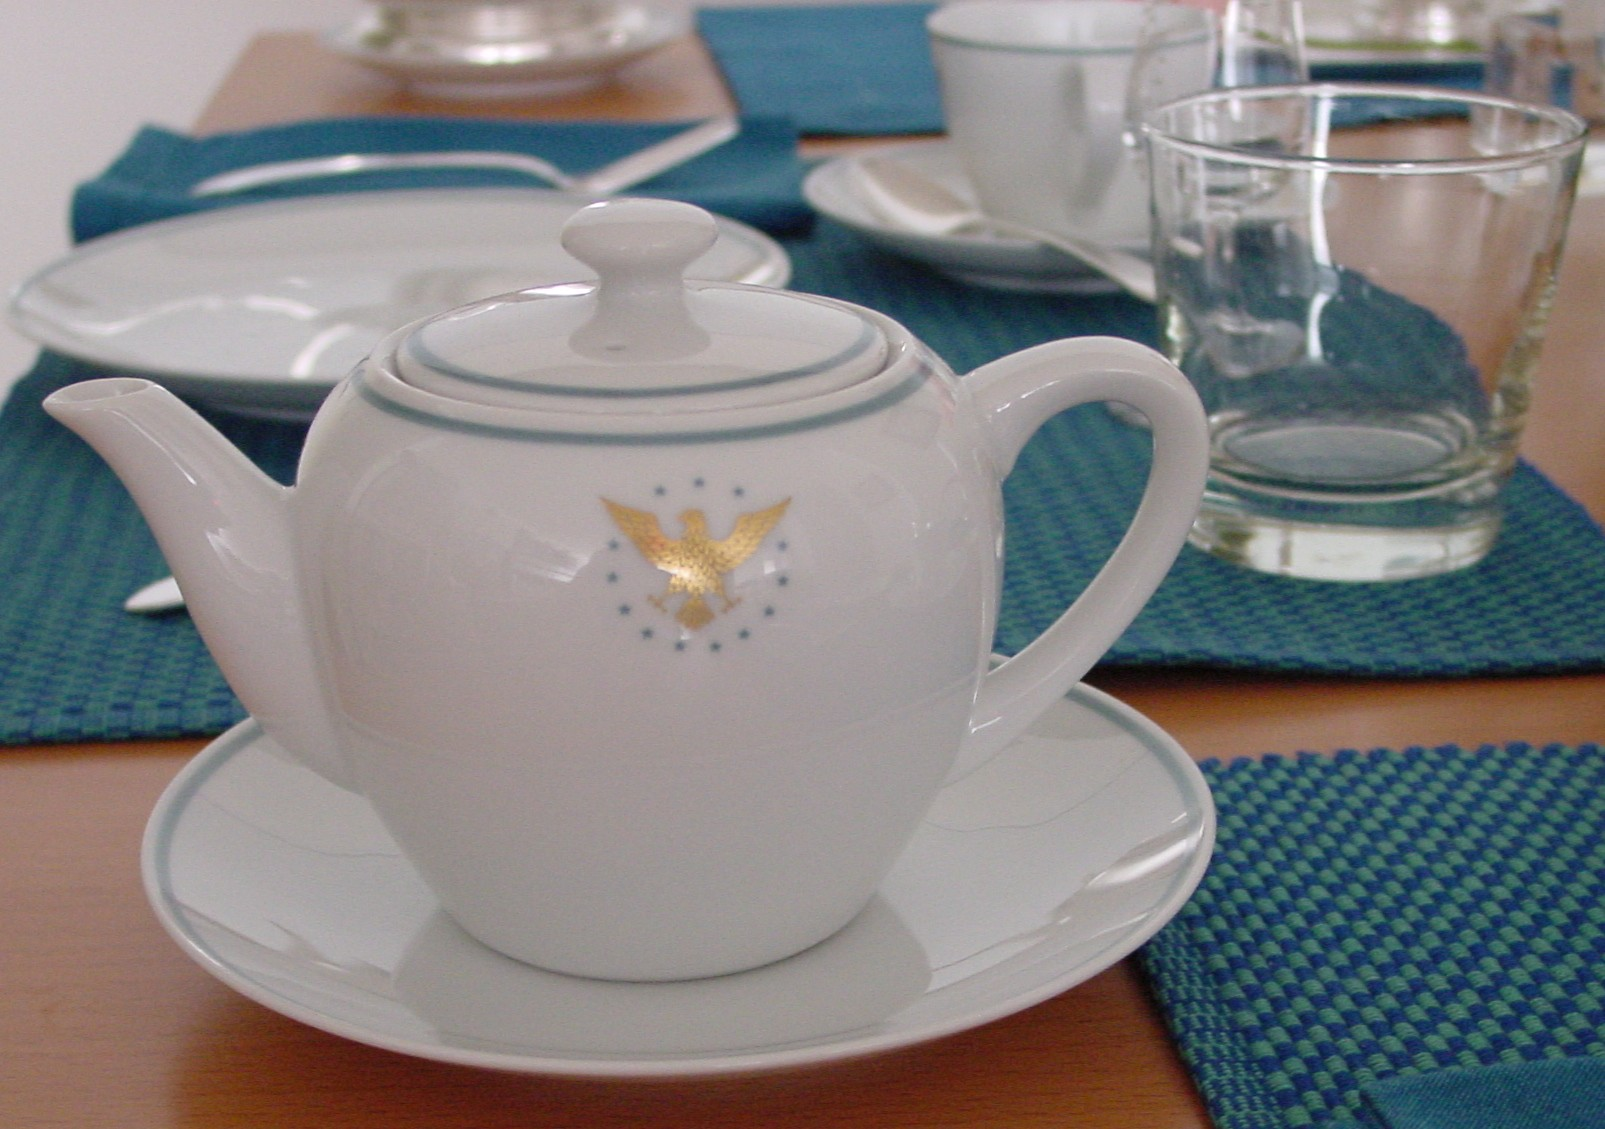 A 1960s individual tea pot from the 1960s Pan Am 'President' pattern adds a deluxe touch to tea time.